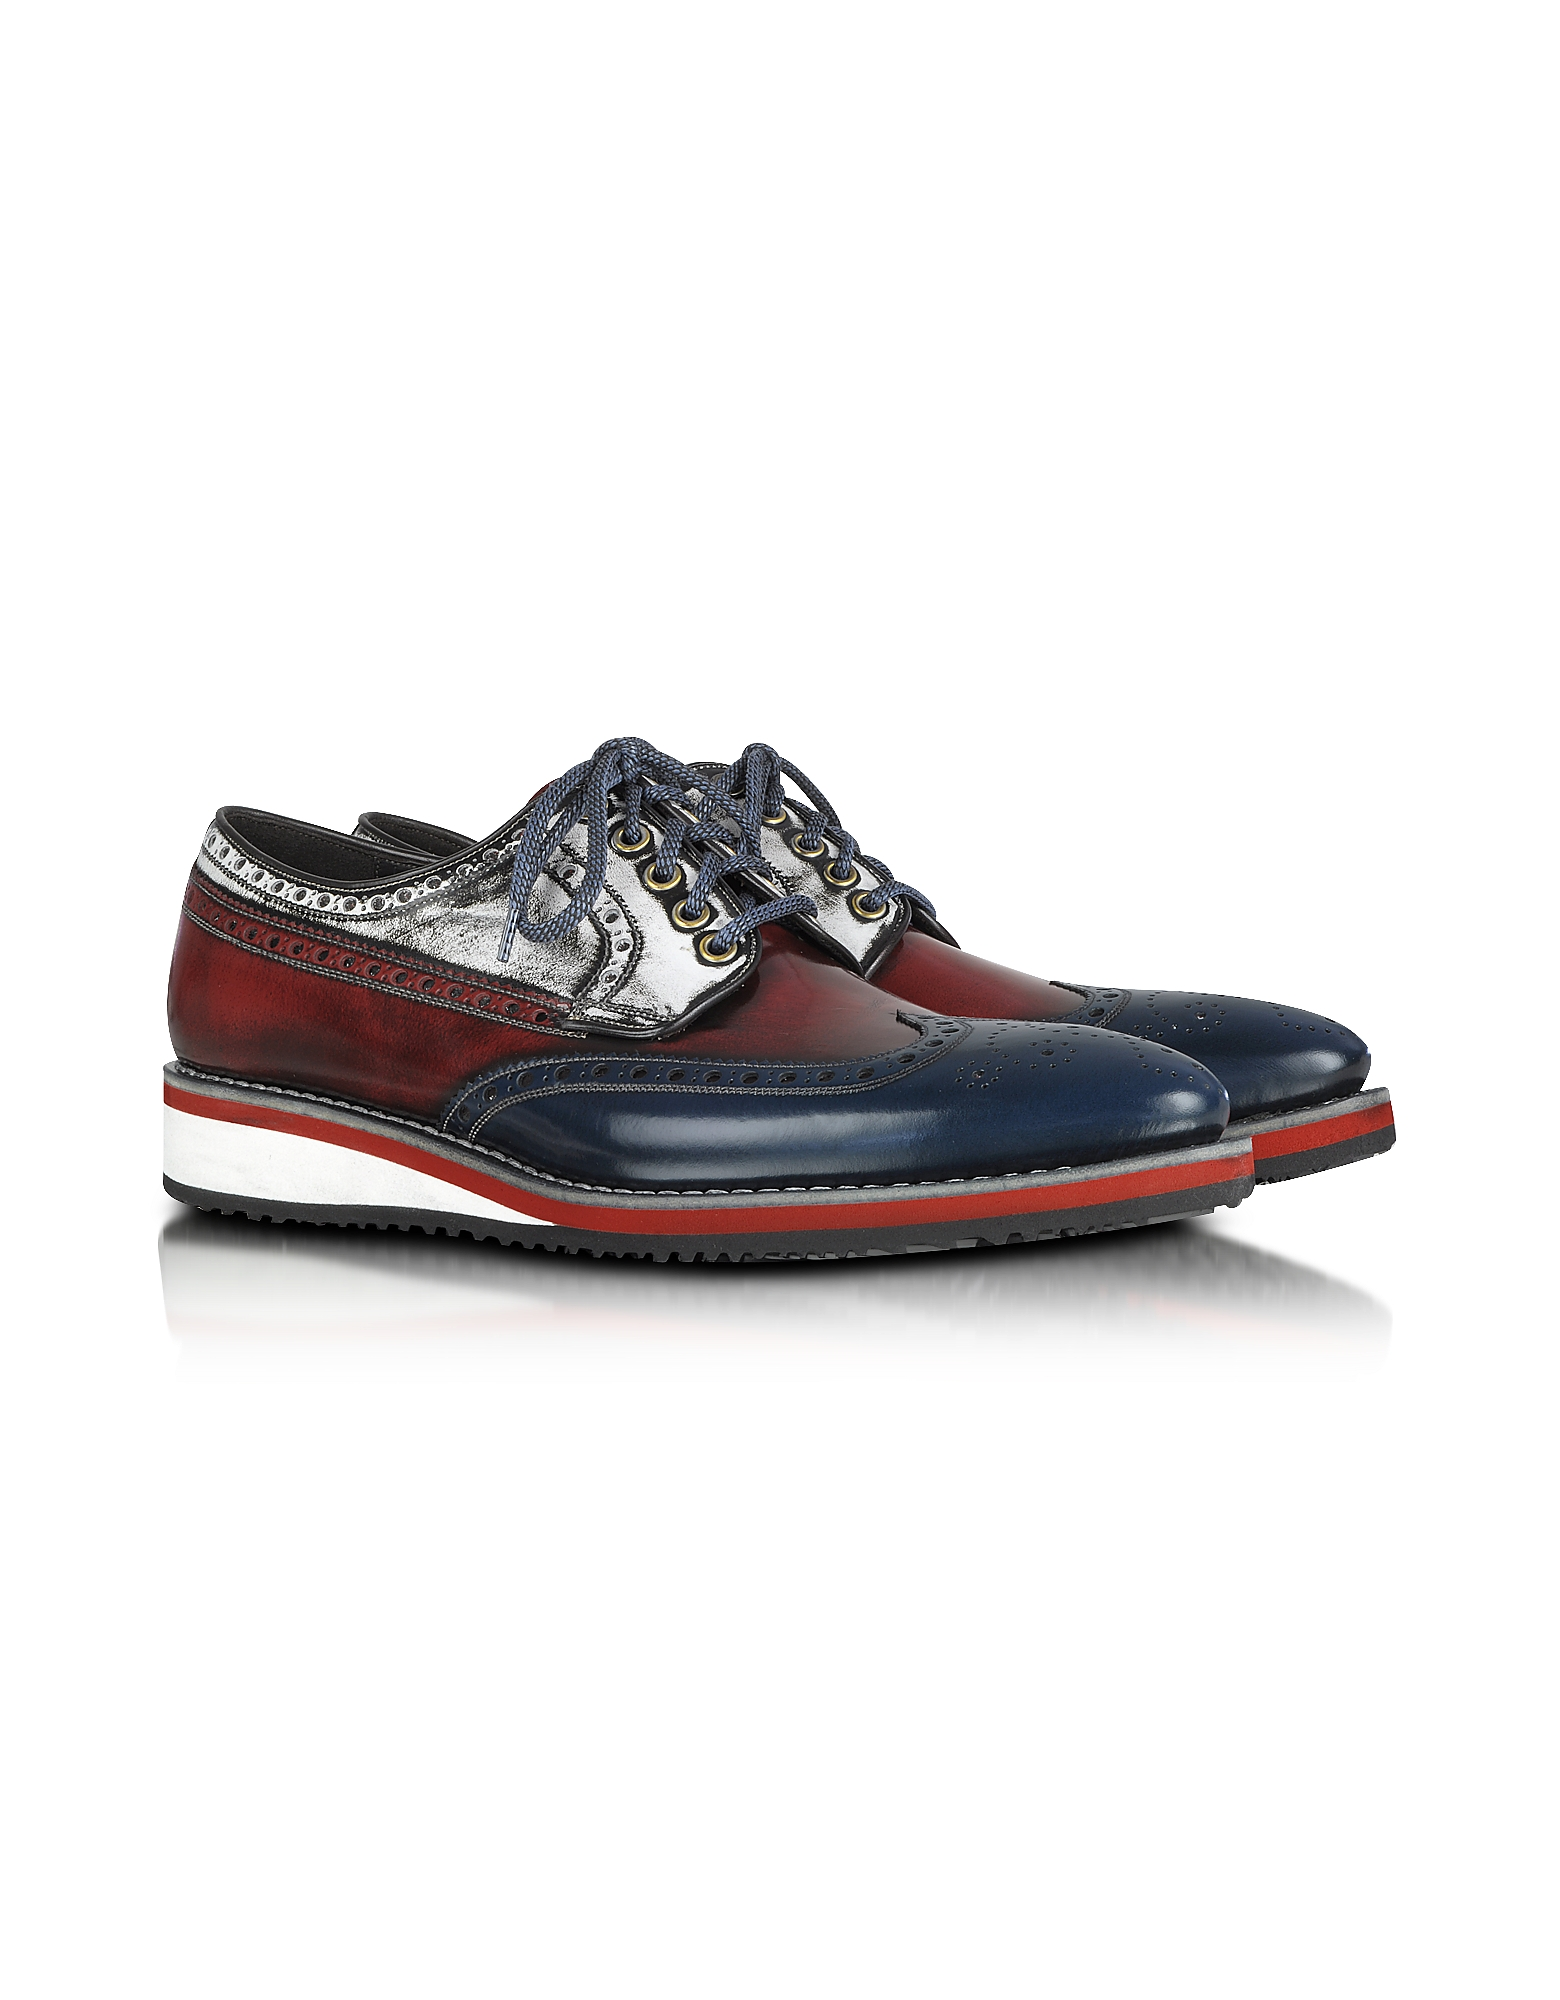 Forzieri Shoes, Red, White and Blue Leather Wingtip Derby Shoes